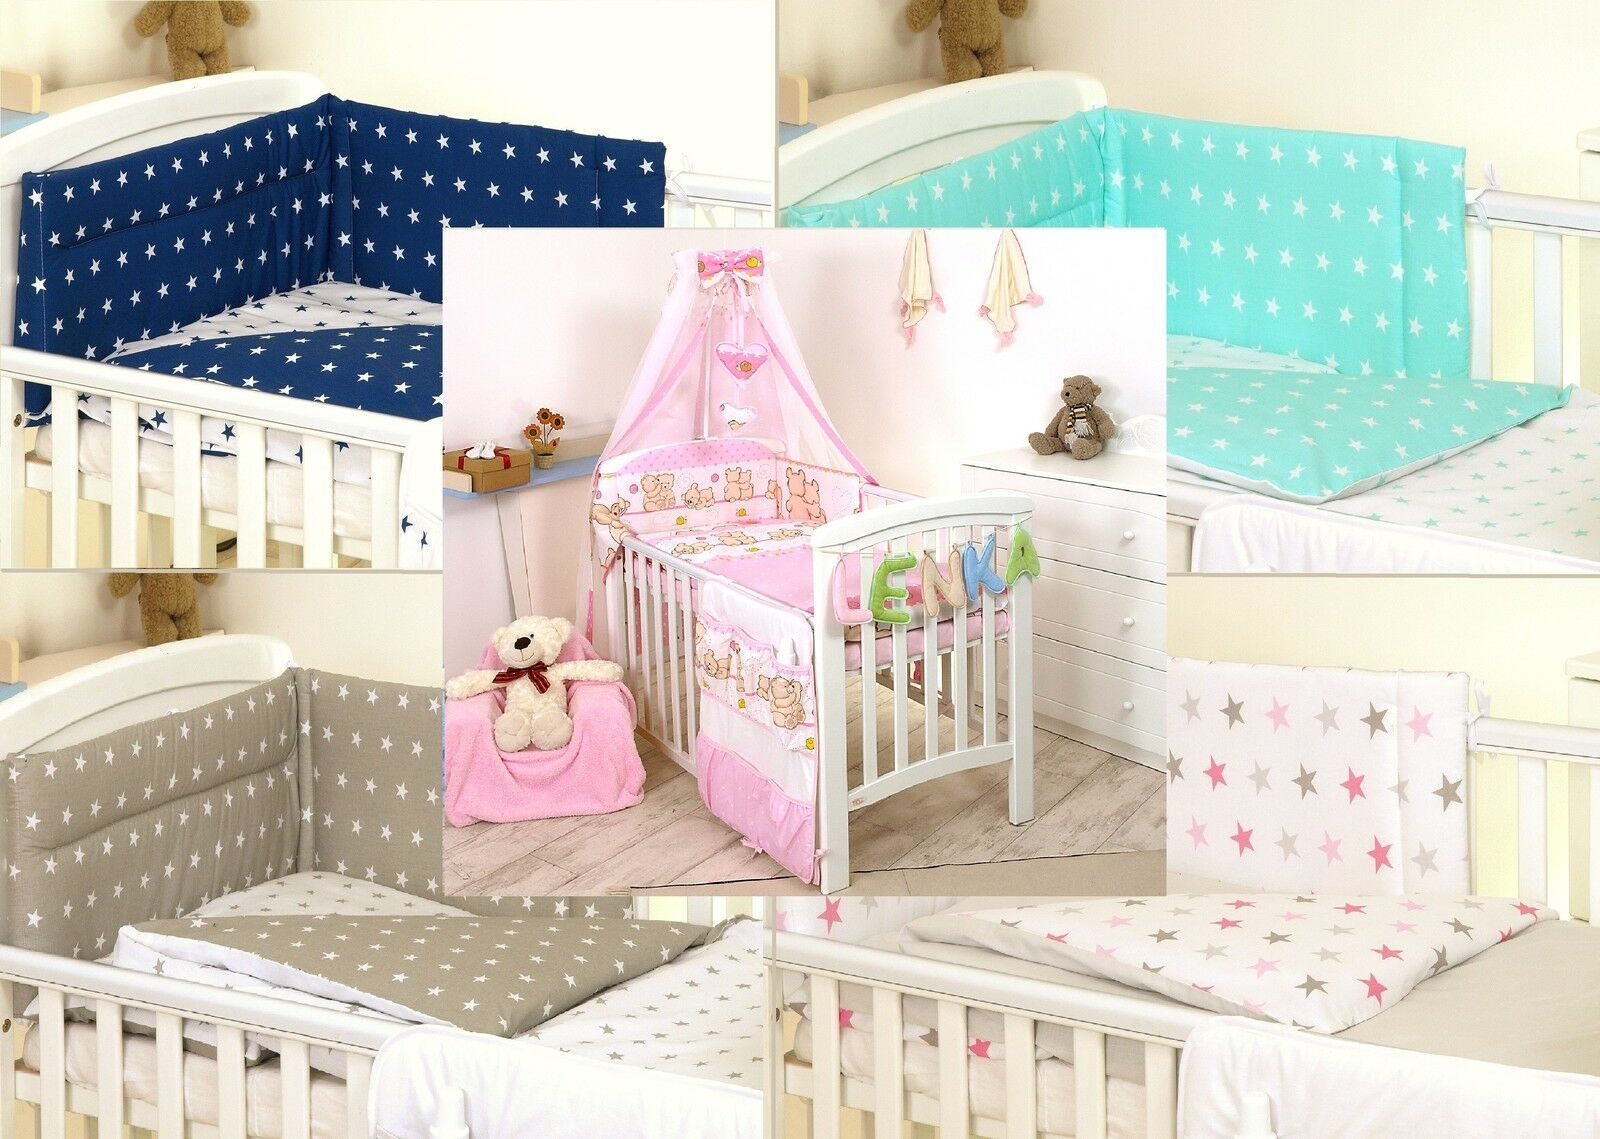 Pink Teddy Baby Bedding Set Cot Or Cot Bed Covers Bumper Canopy